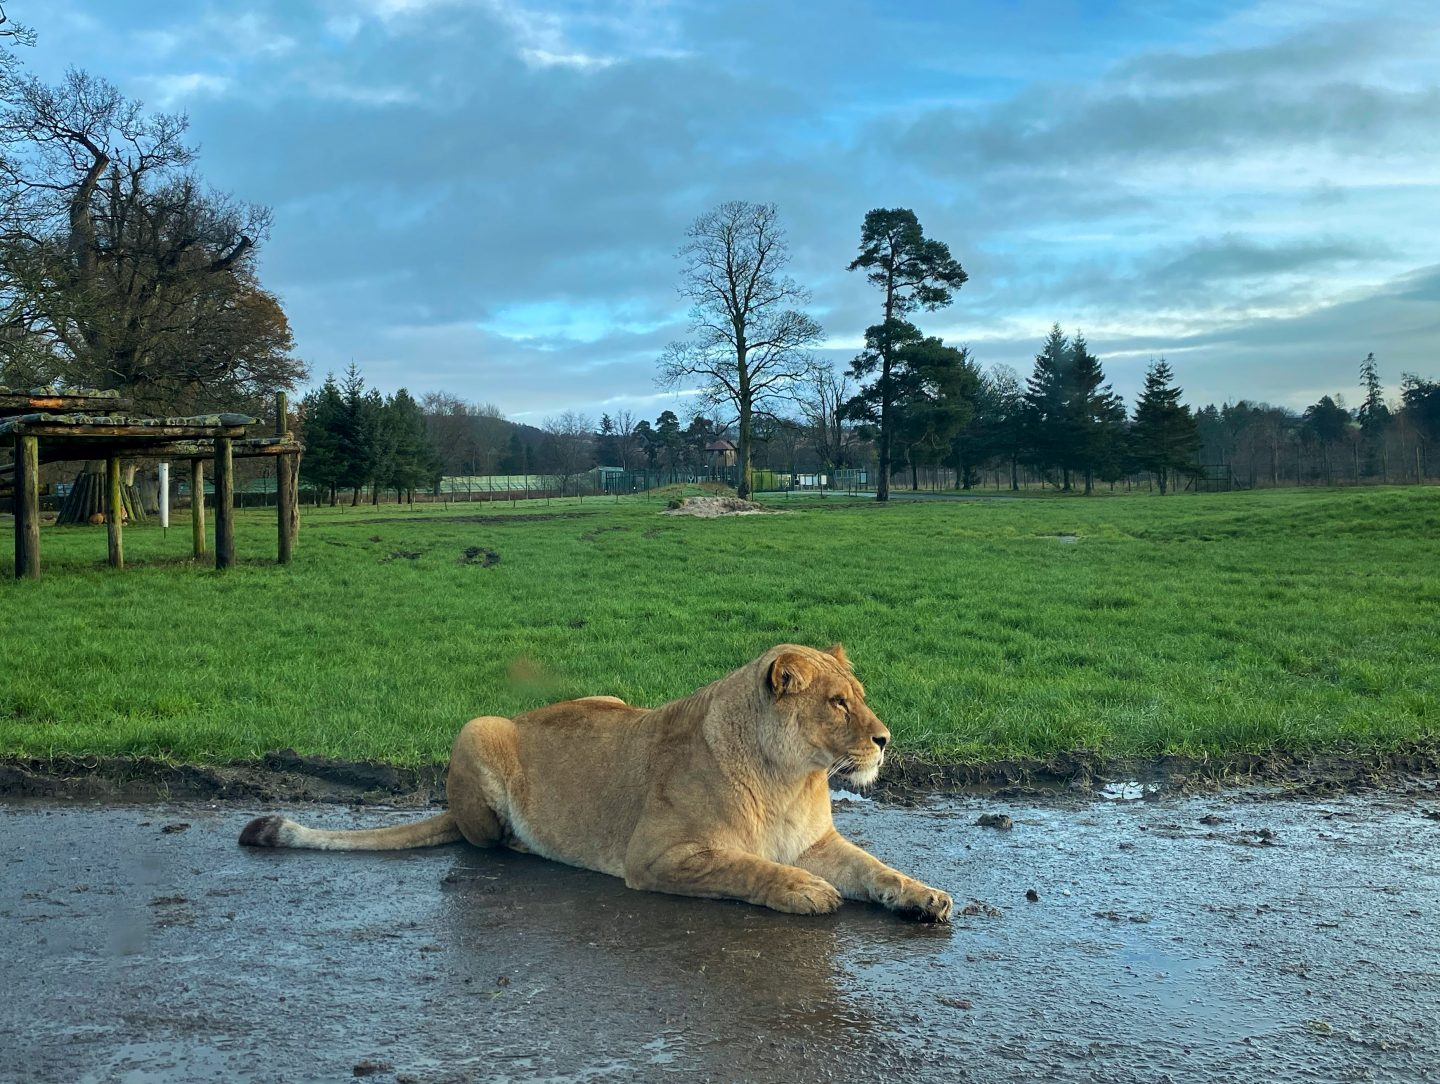 Blairdrummond safari park